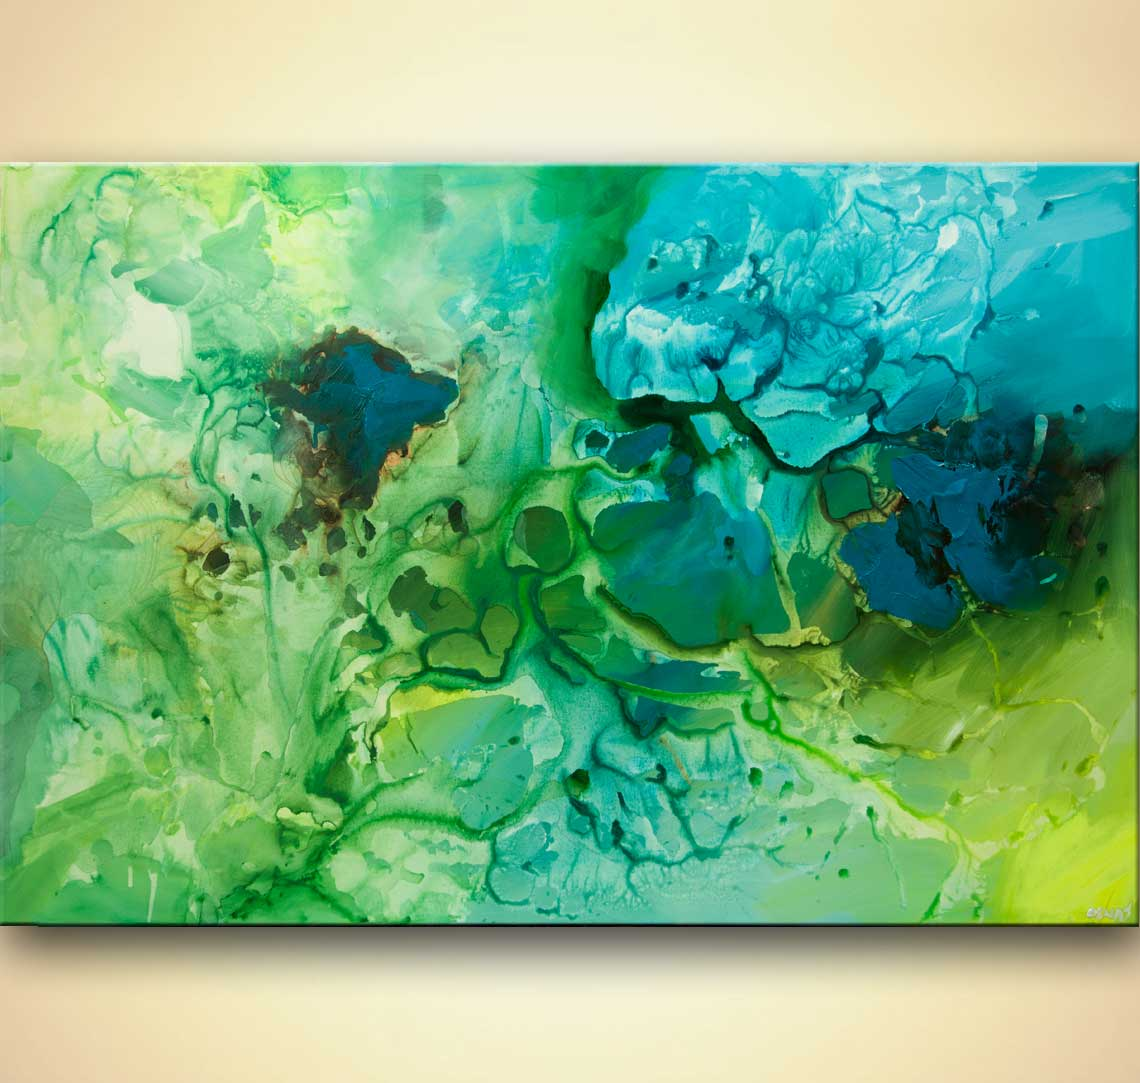 Painting big contemporary green blue teal abstract art 7963 for Blue paintings on canvas